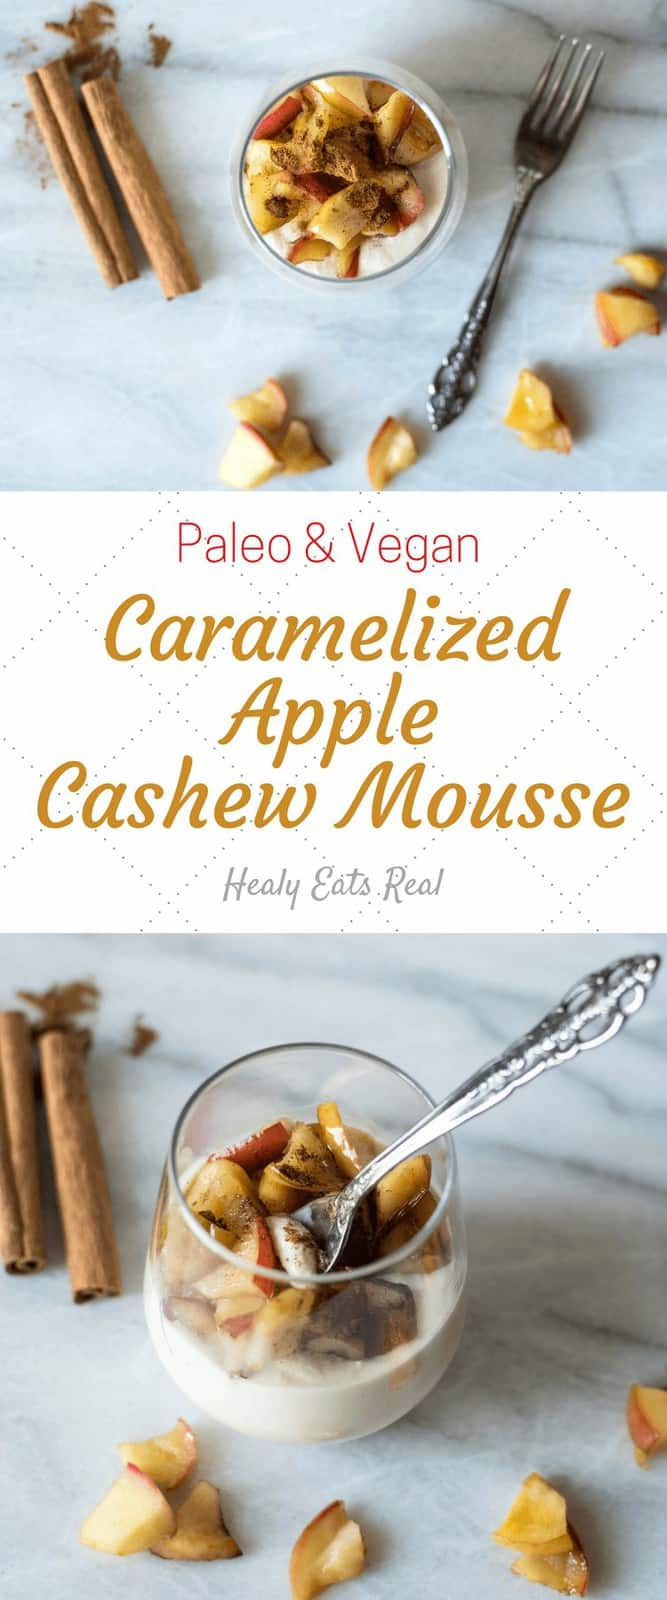 Healthy Caramelized Apple Cashew Mousse Recipe (Paleo & Vegan)